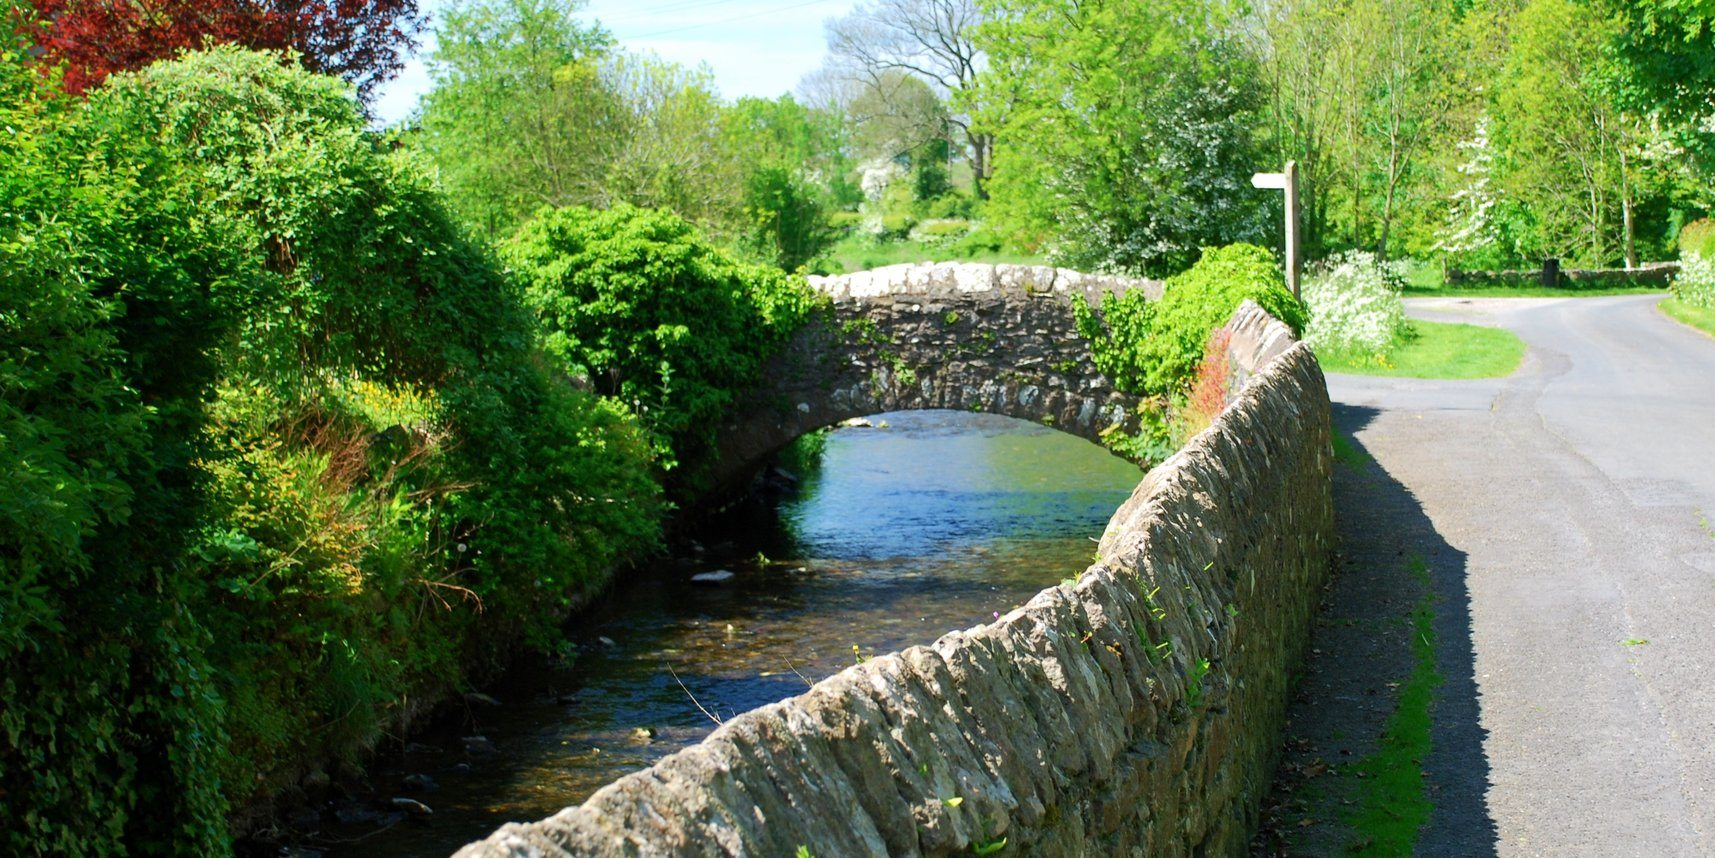 The River Eea in Cark in Cartmel village